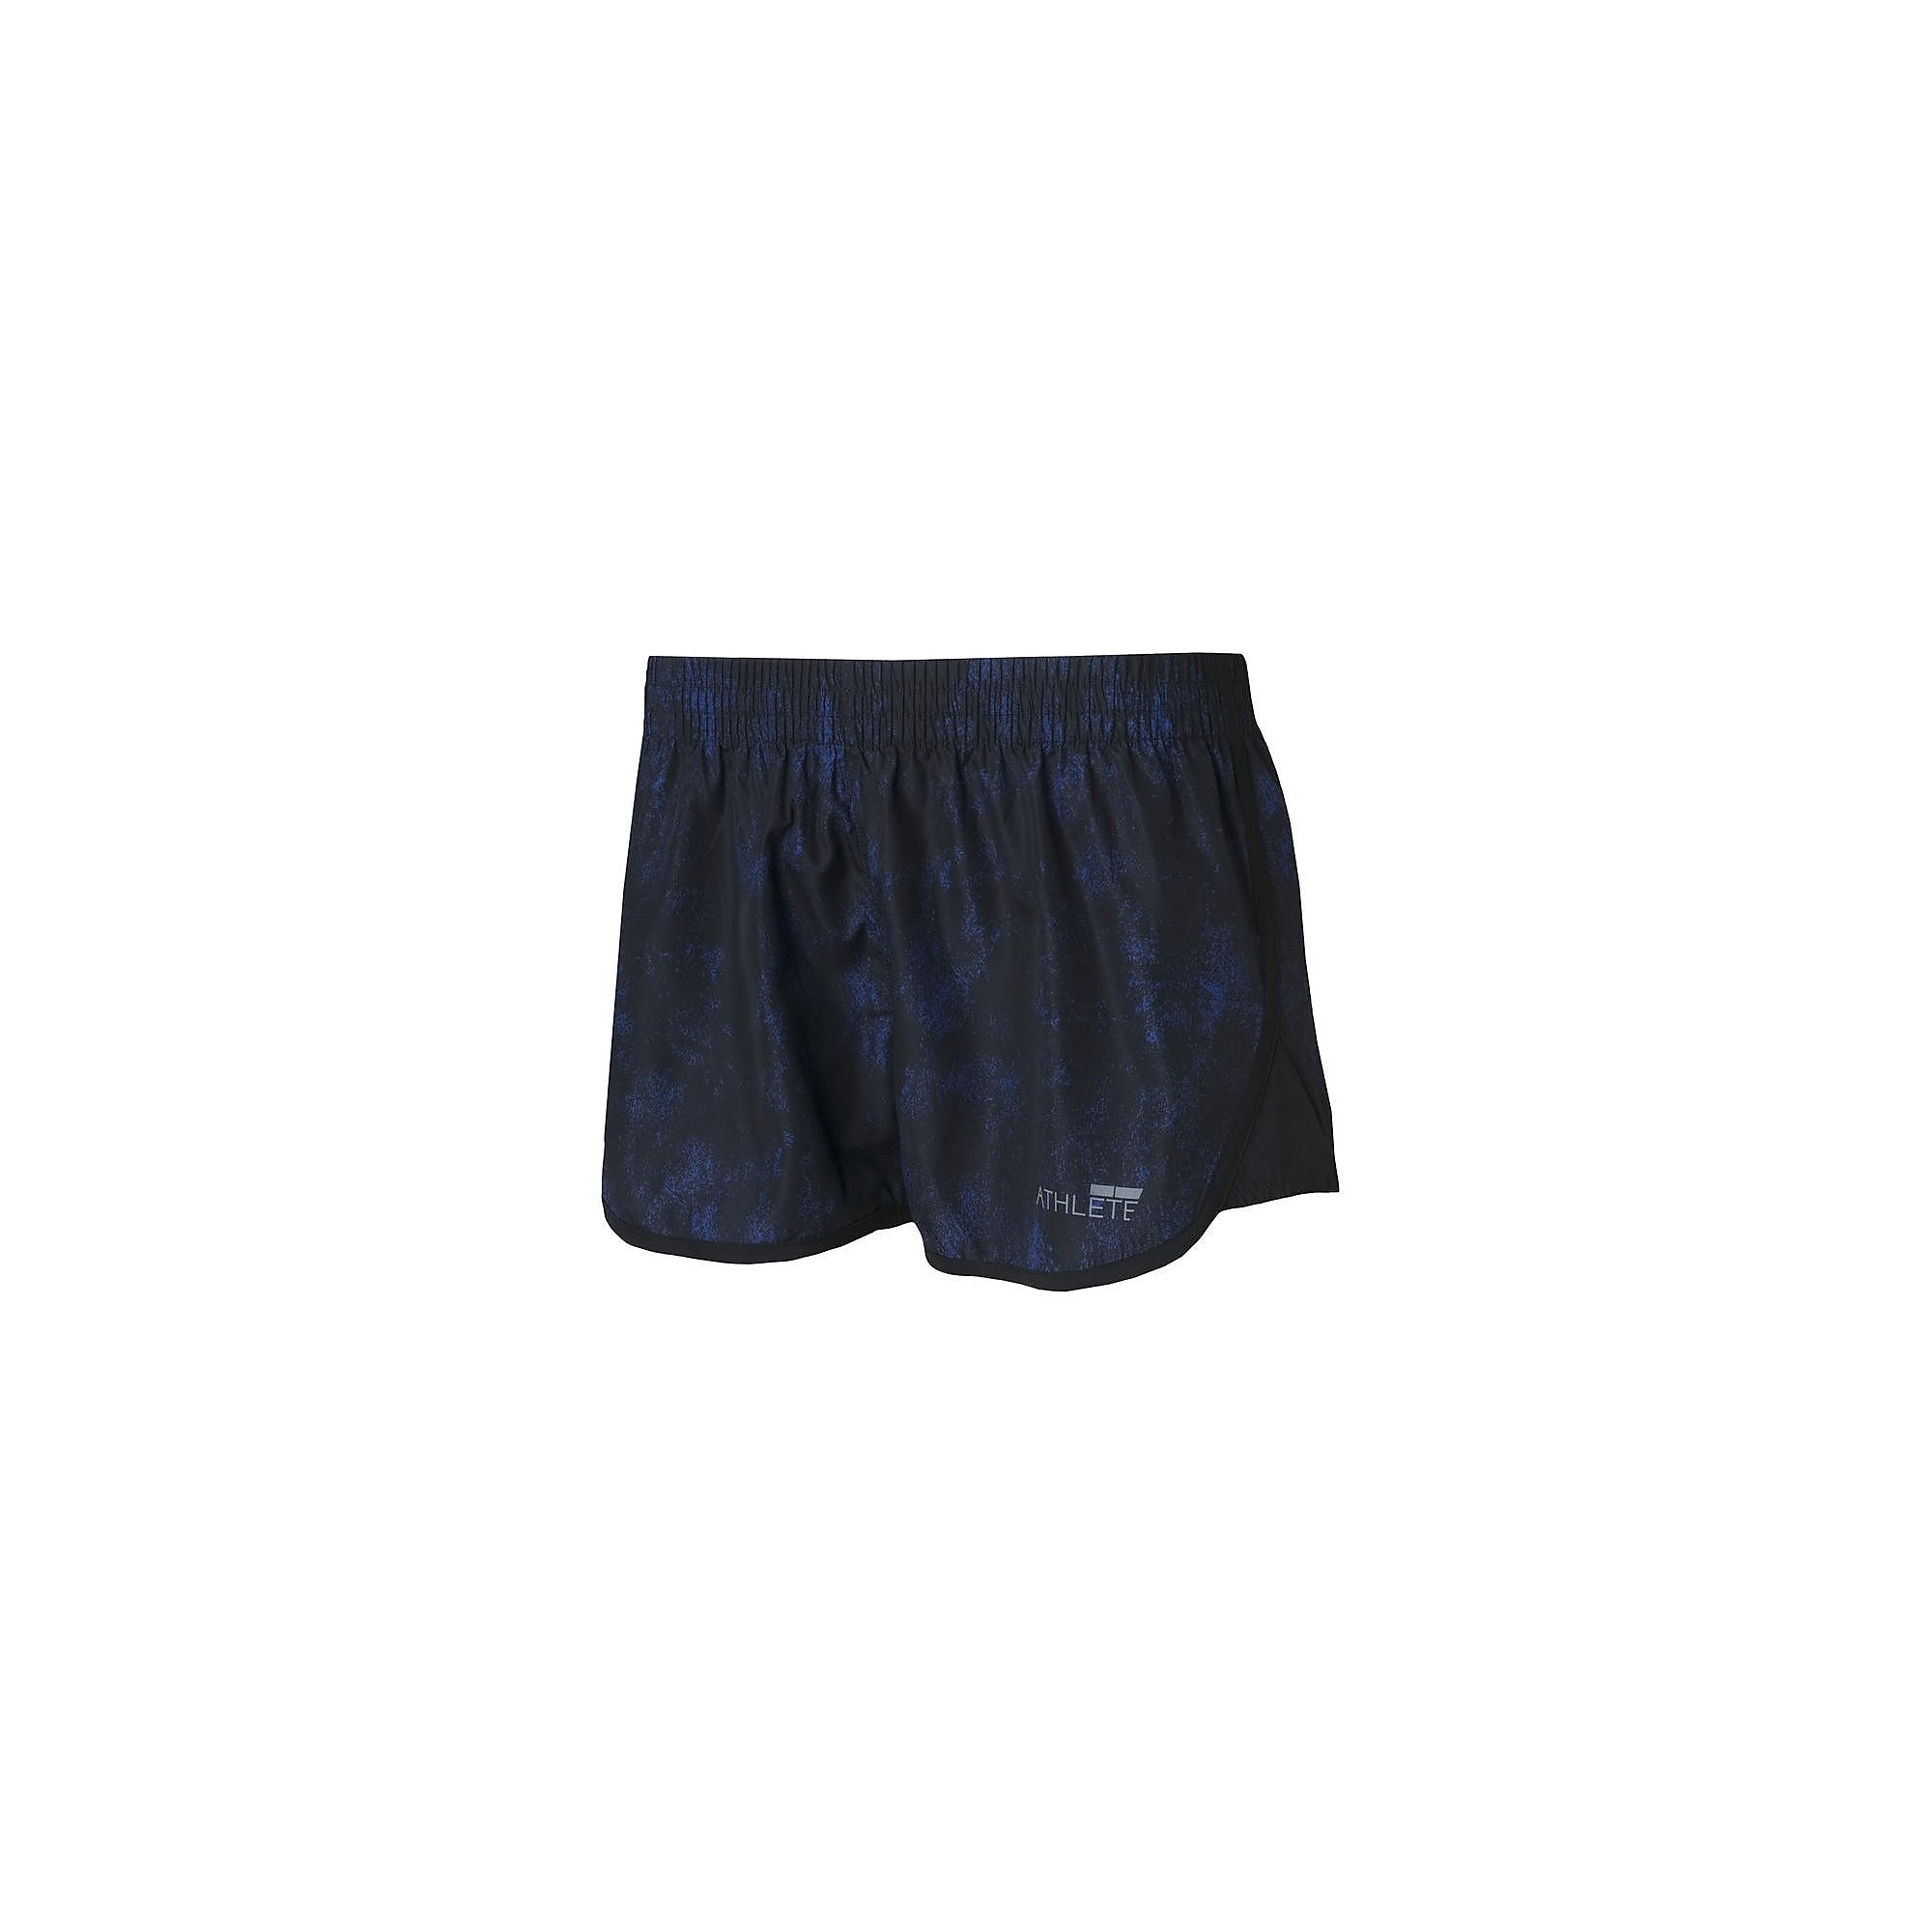 Athlete EYES WOVEN SHORT